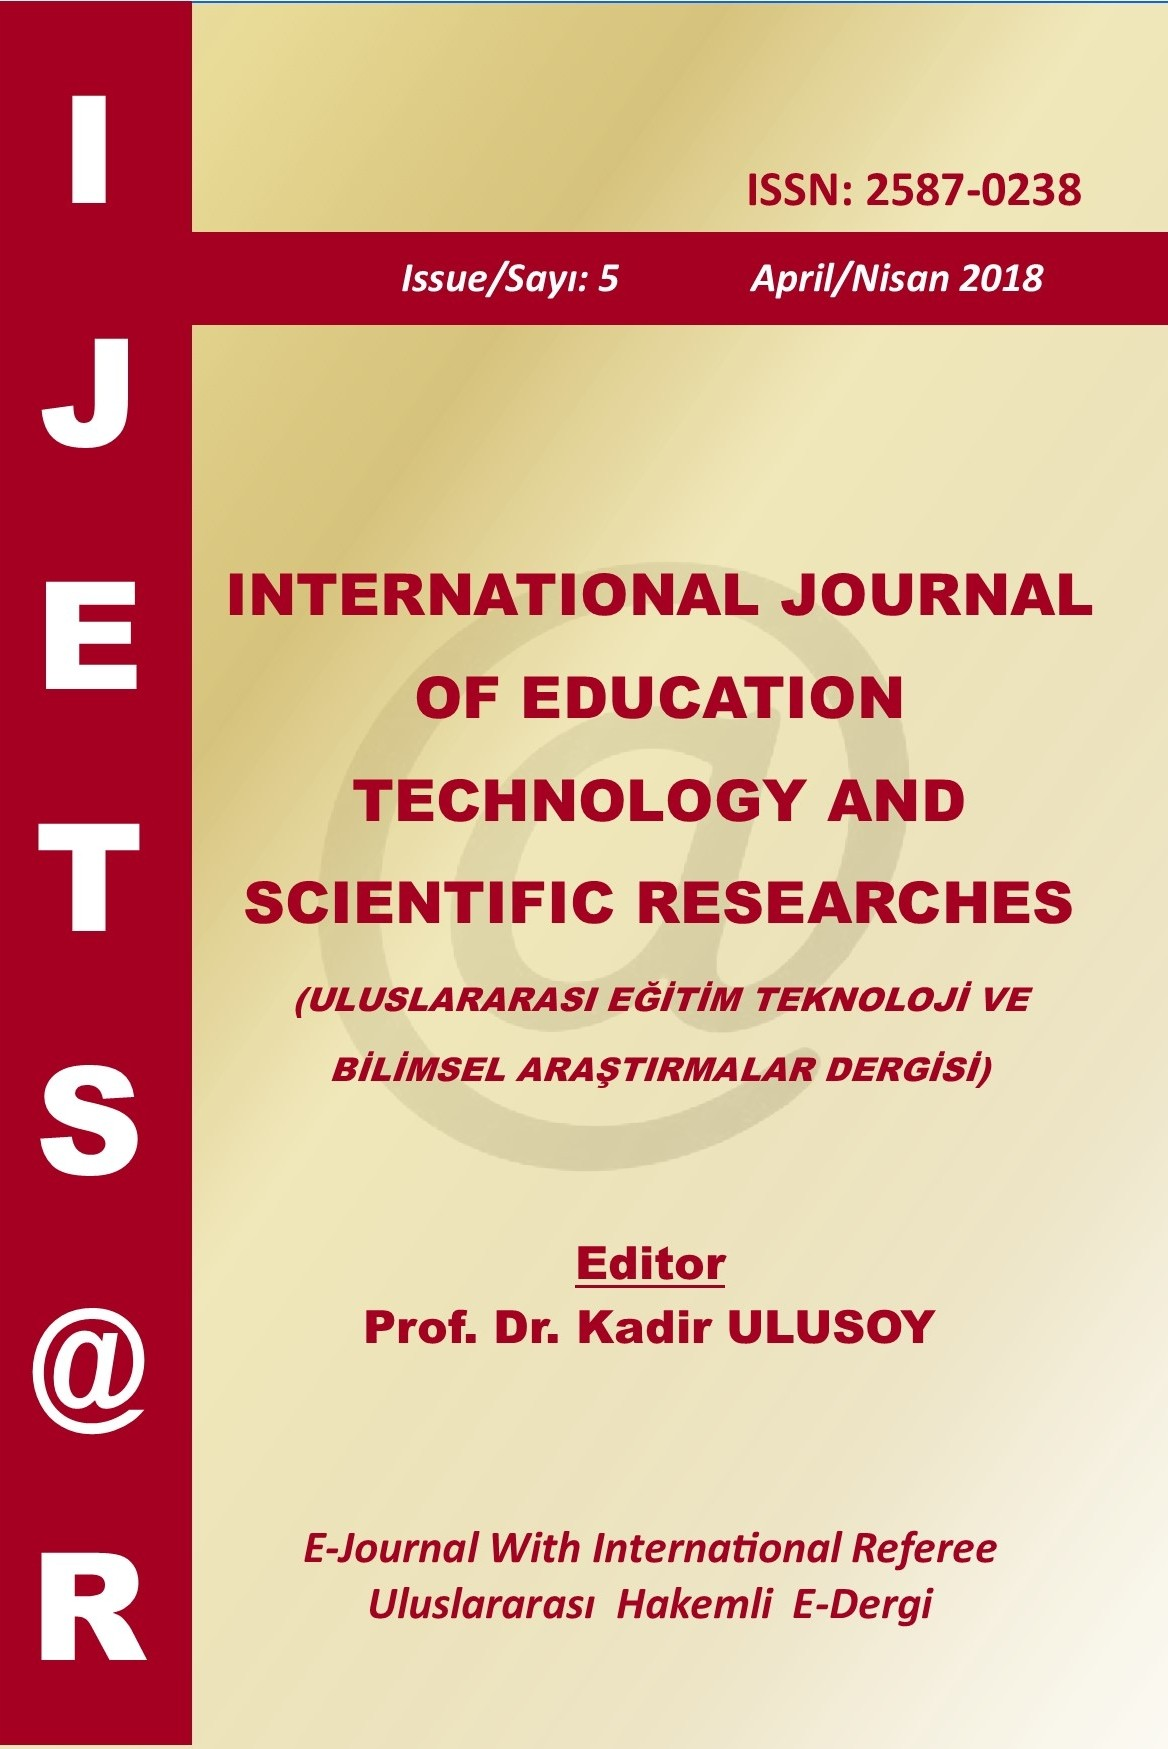 International Journal of Education Technology and Scientific Researches